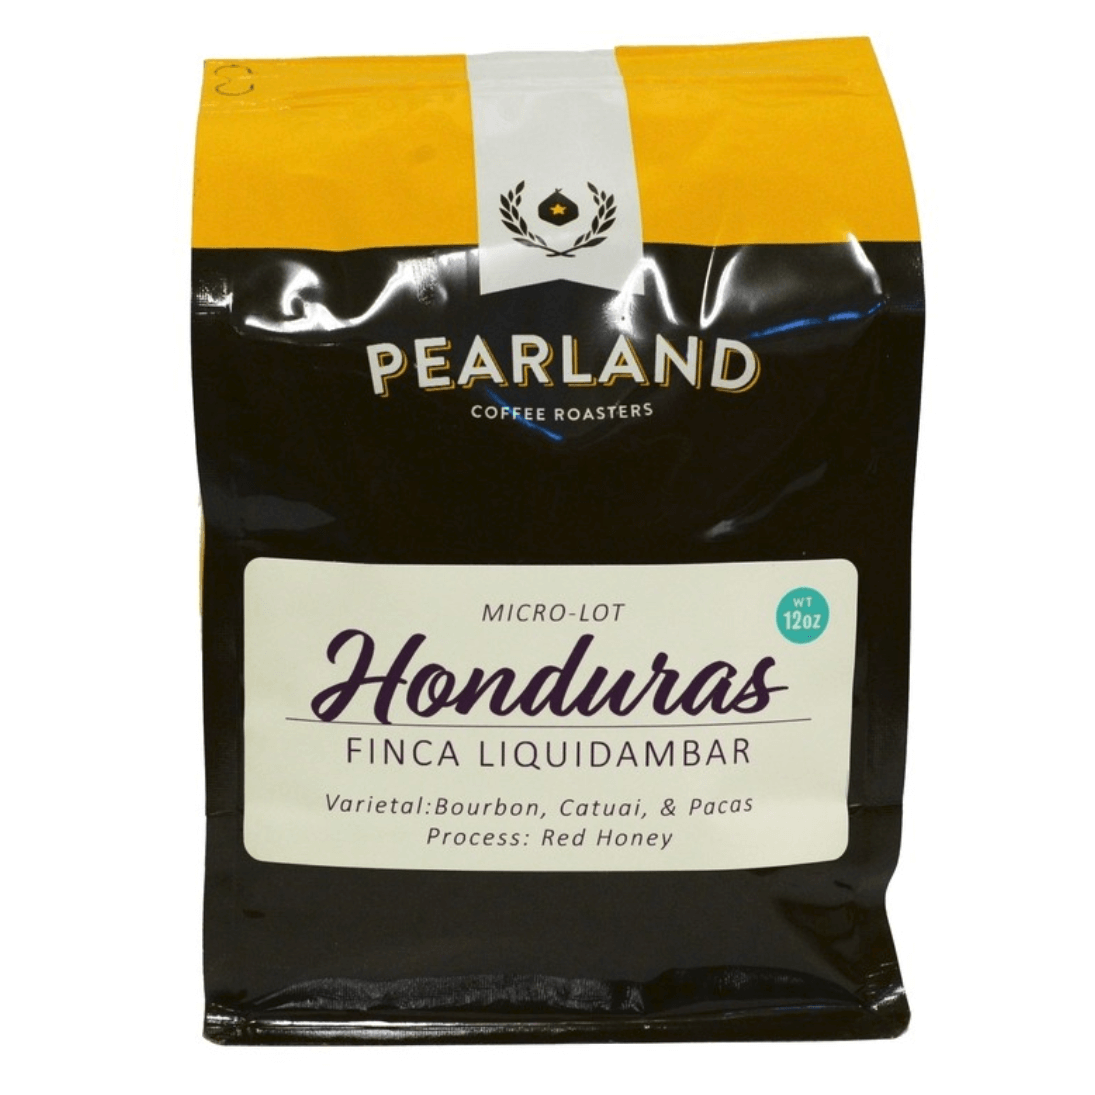 Honduras Finca Liquidambar from Pearland Coffee Roasters